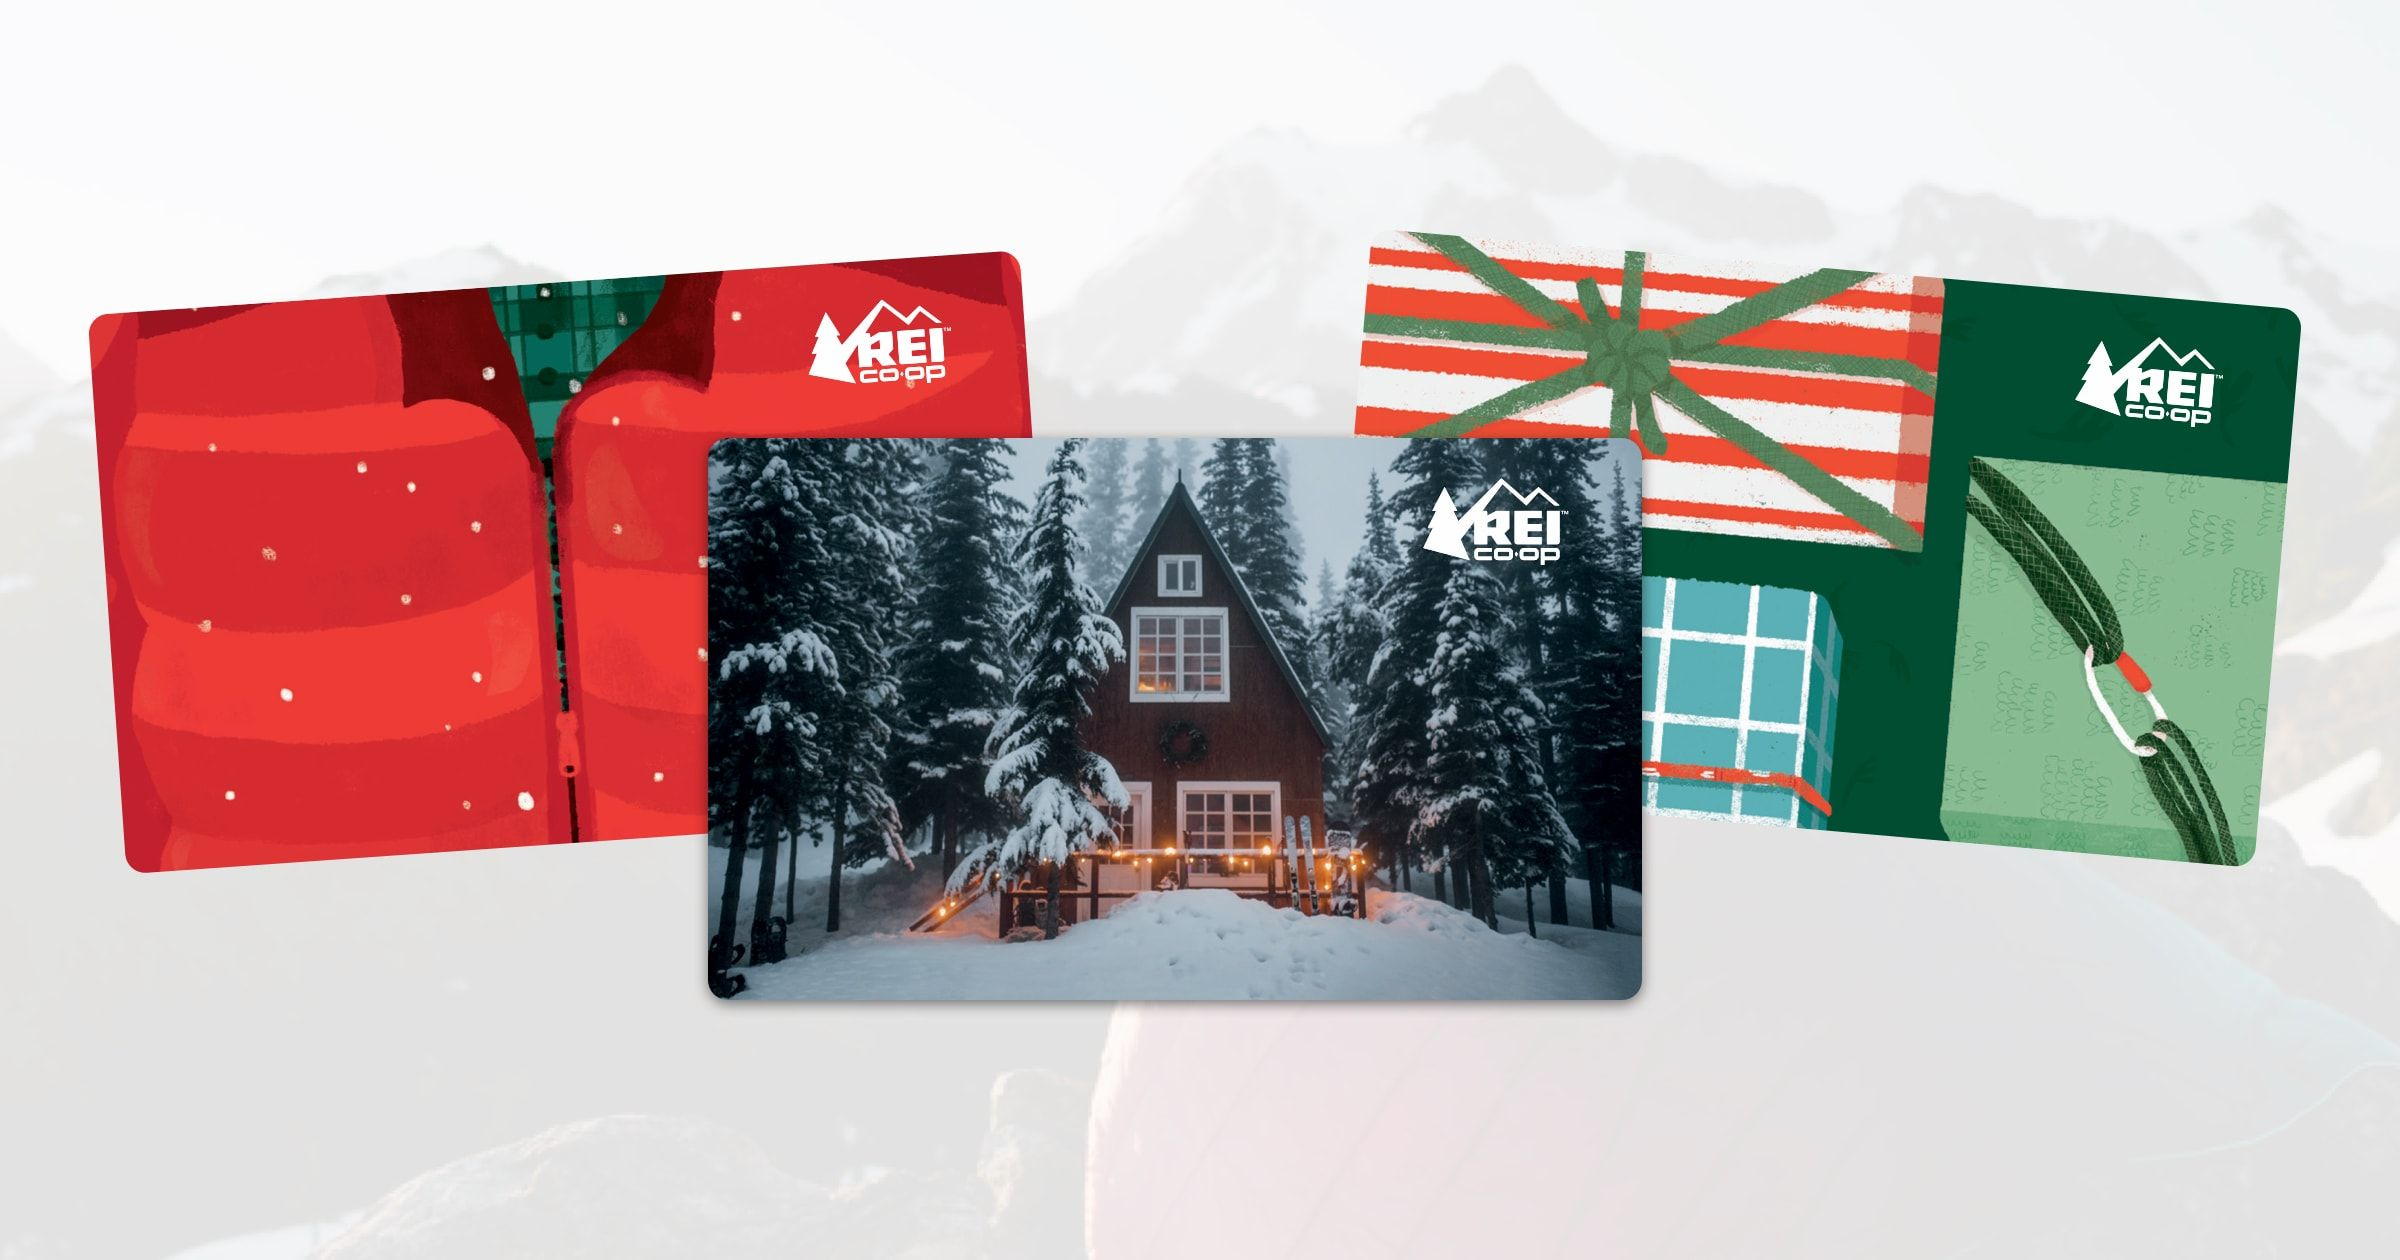 Grant their outdoor gear wishes buy an rei gift card